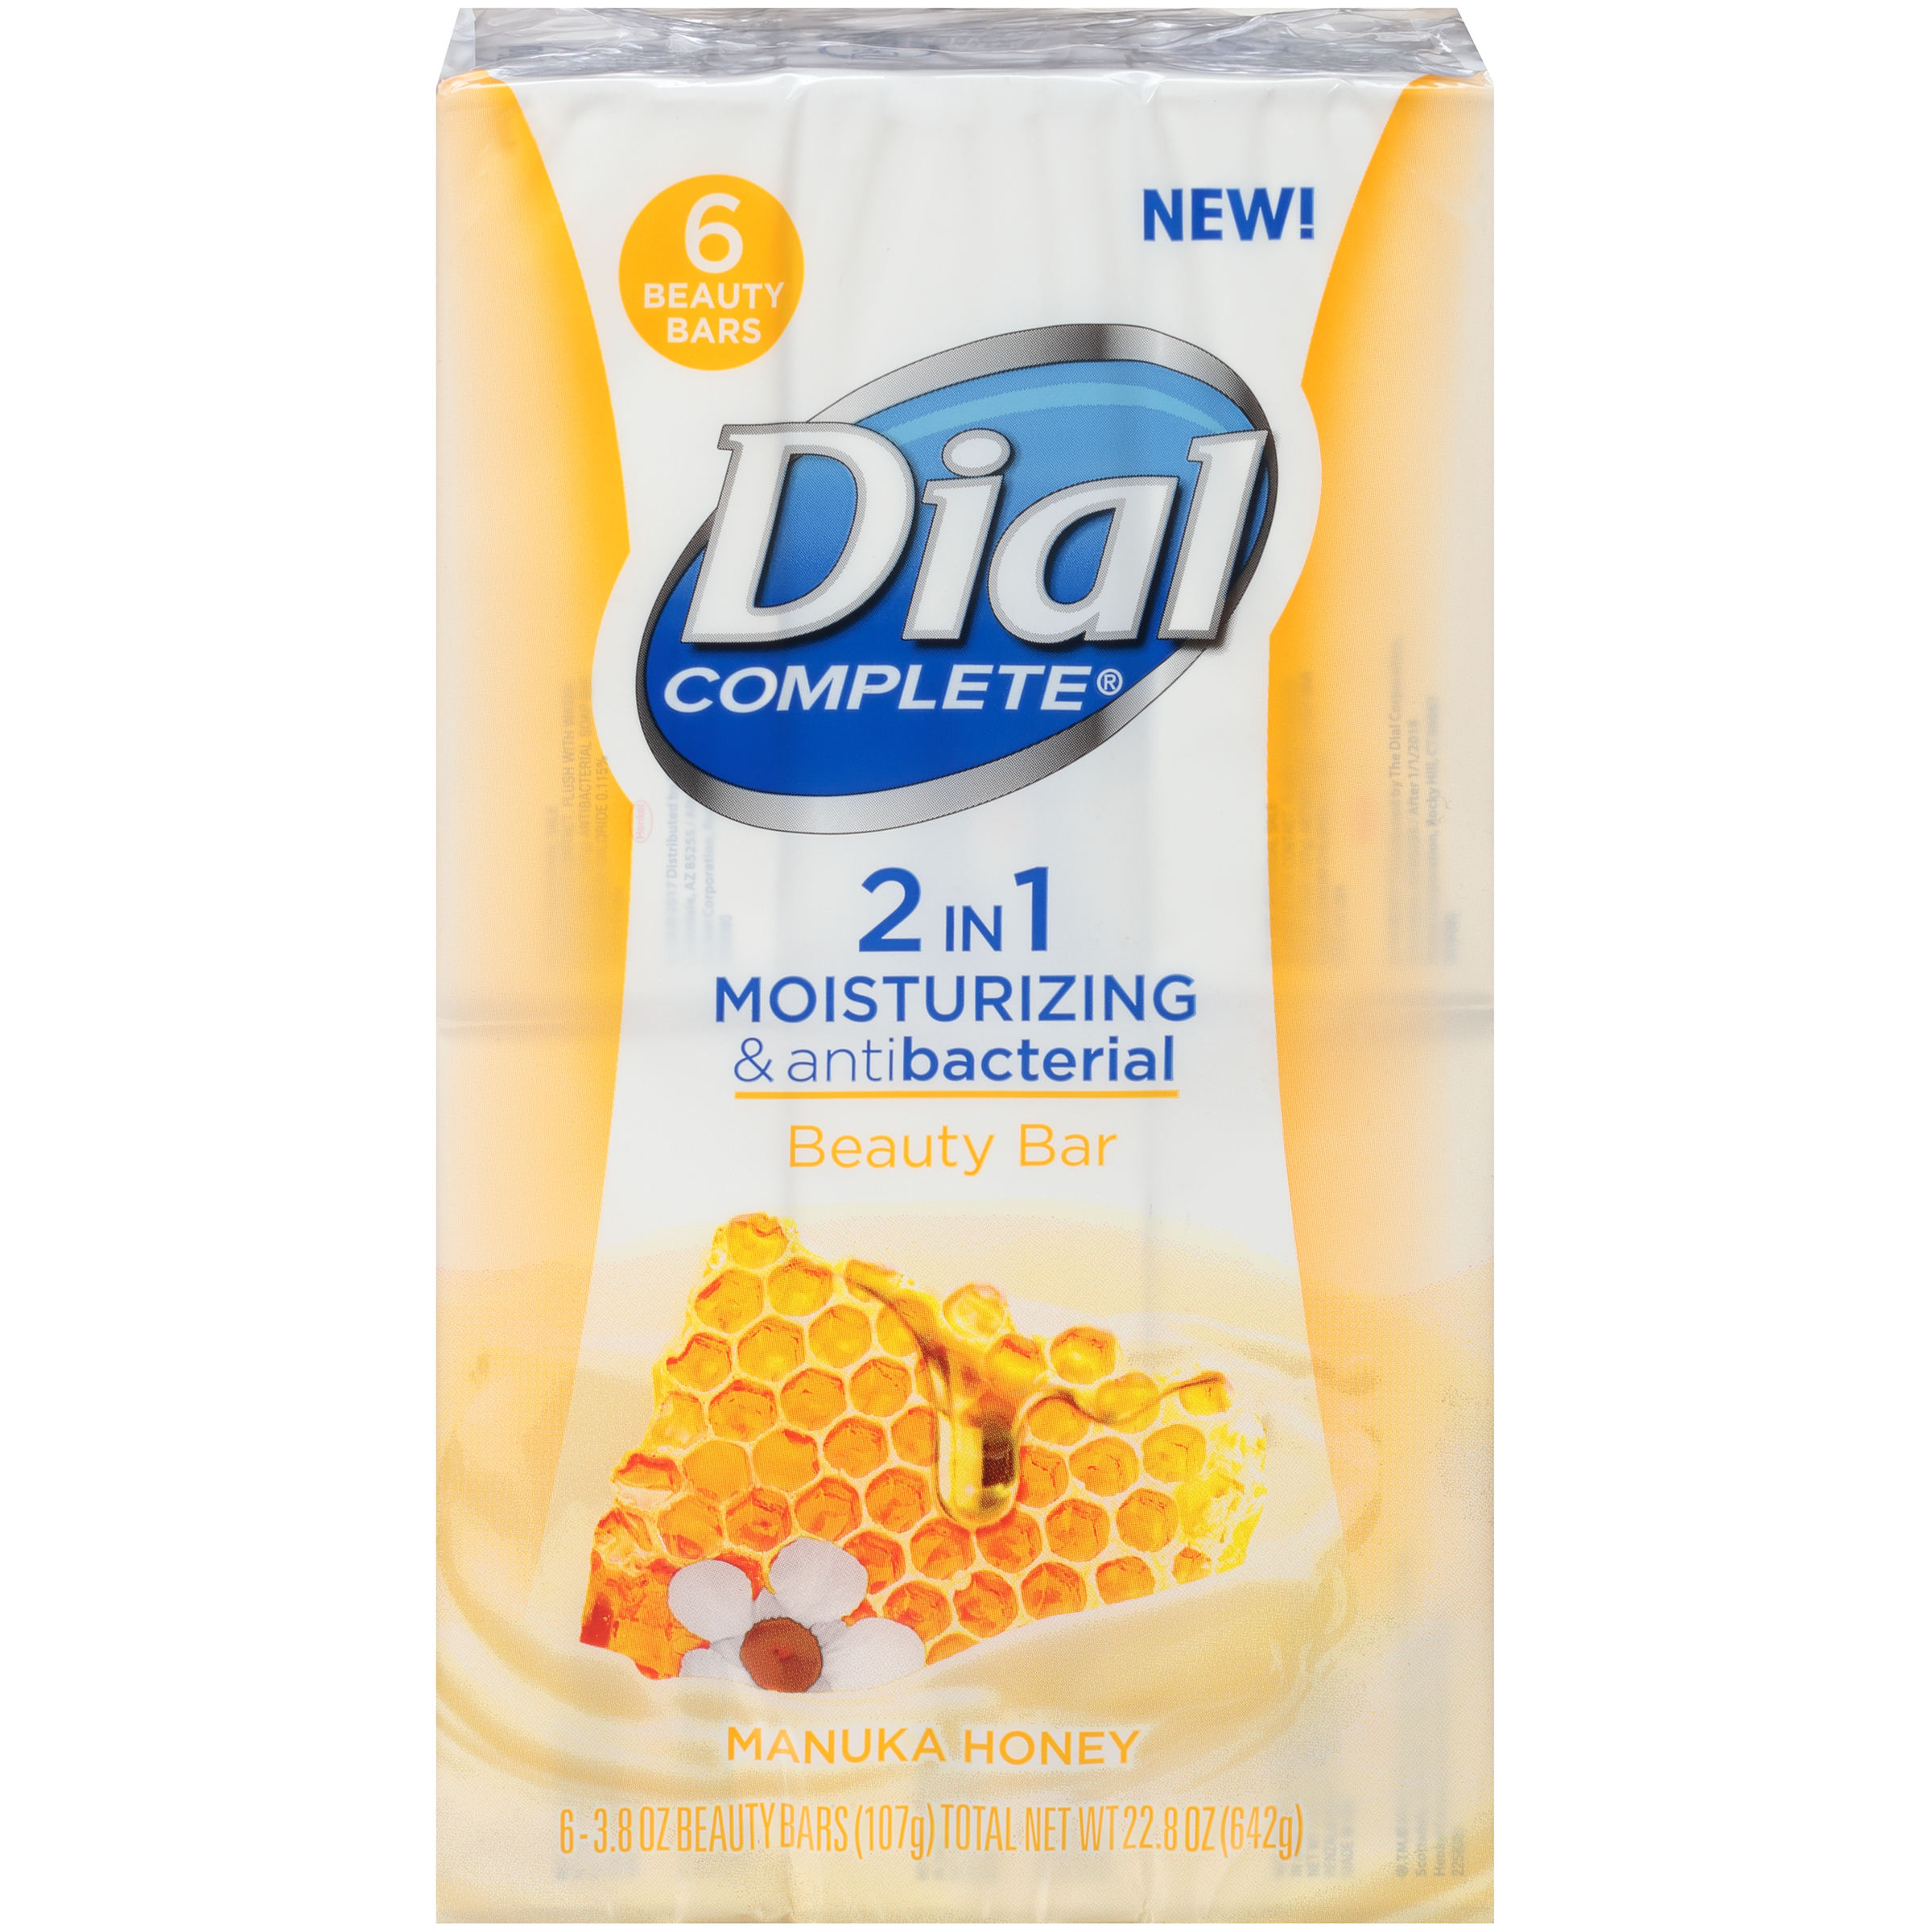 Dial Complete 2 in 1 Moisturizing & Antibacterial Beauty Bar, Manuka Honey, 3.8 Ounce, 6 Bars